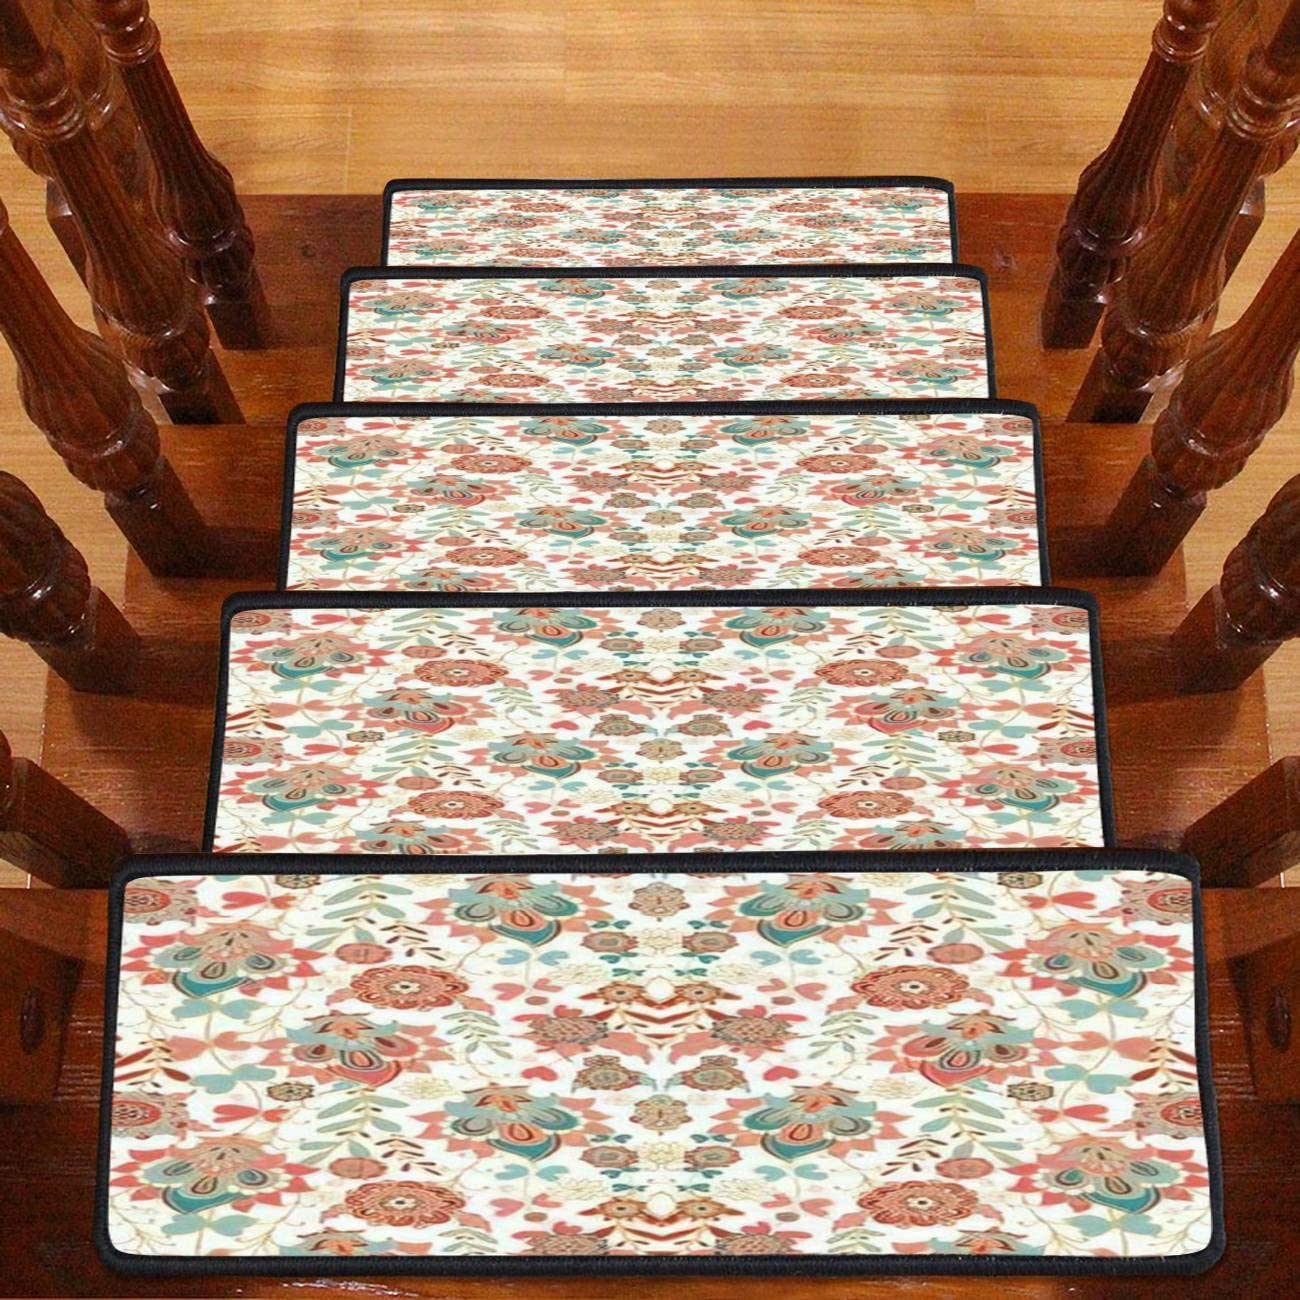 Paisley Floral Pattern with Decorative Stair New Super intense SALE popularity Trea Carpet Flowers